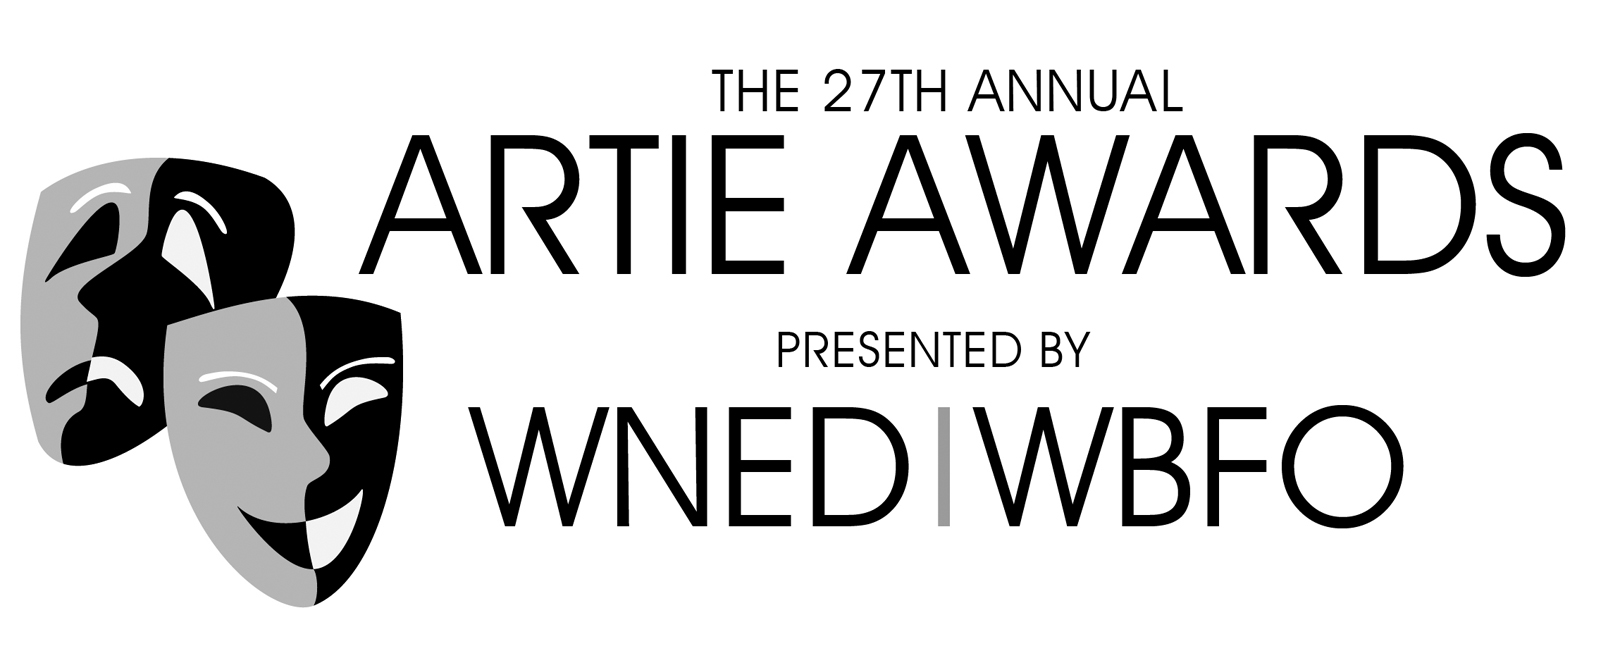 Artie Awards |  June 5, 2017